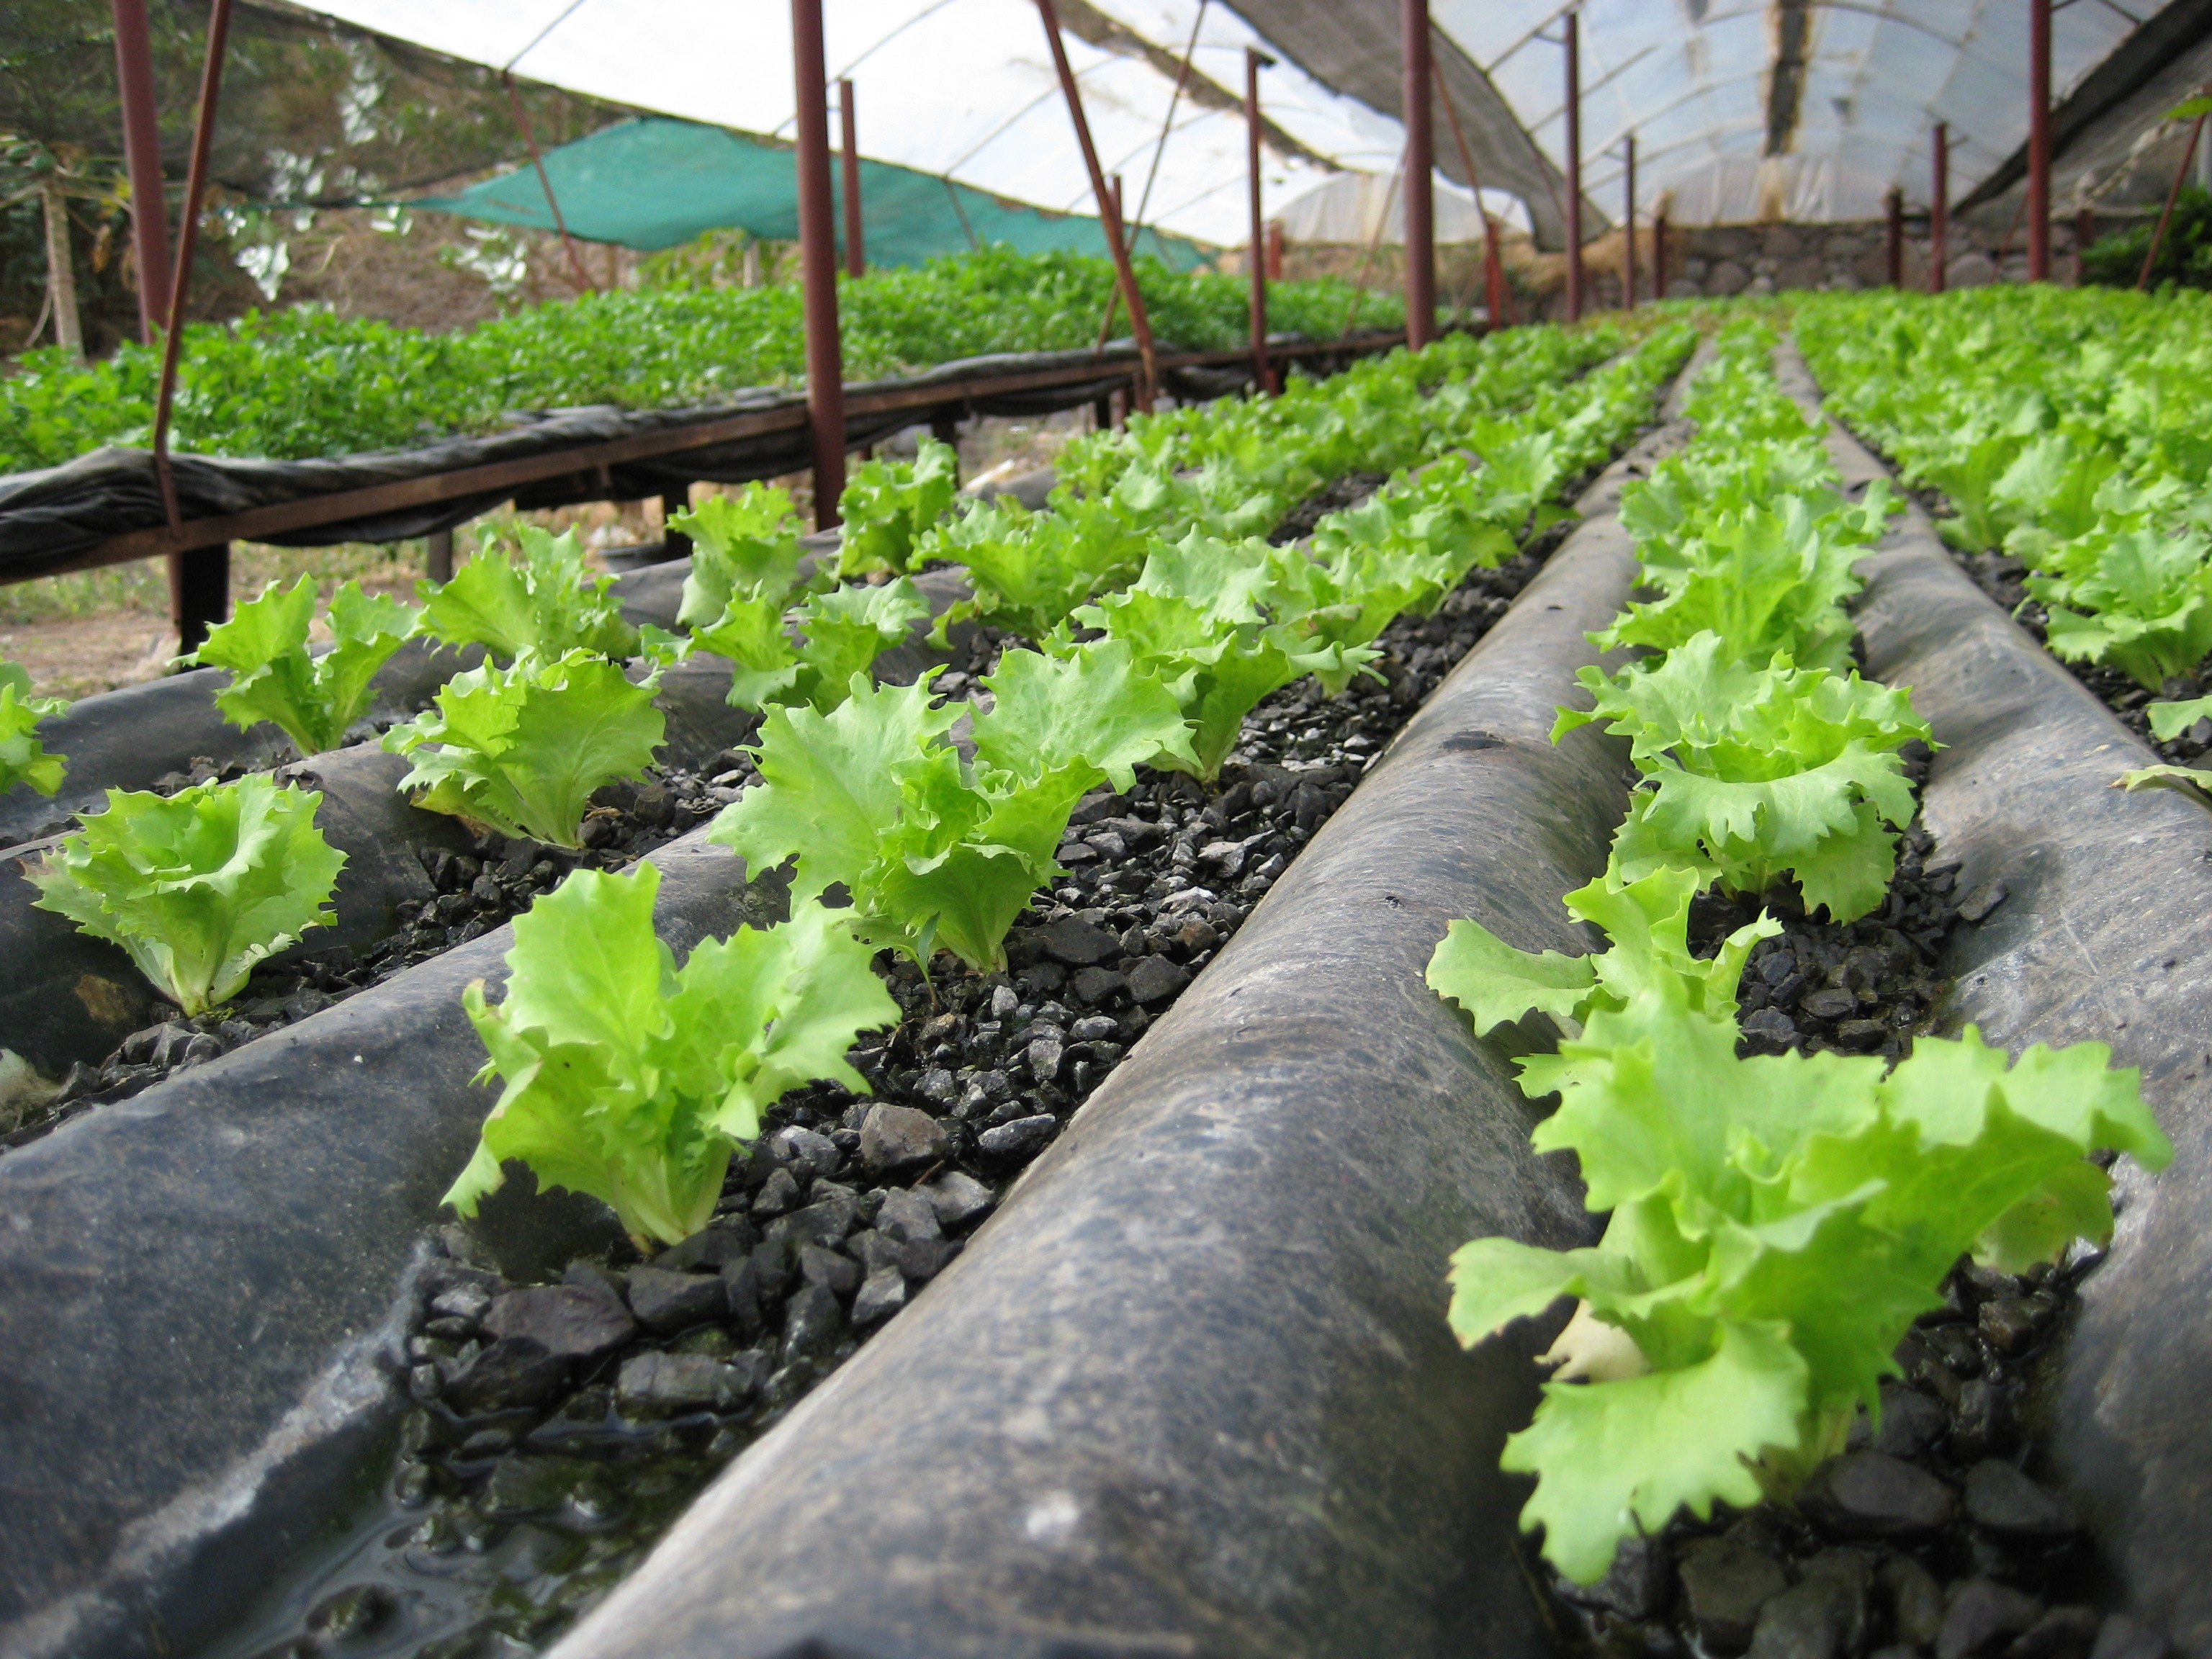 An analysis of hydroponics which is growing without soil